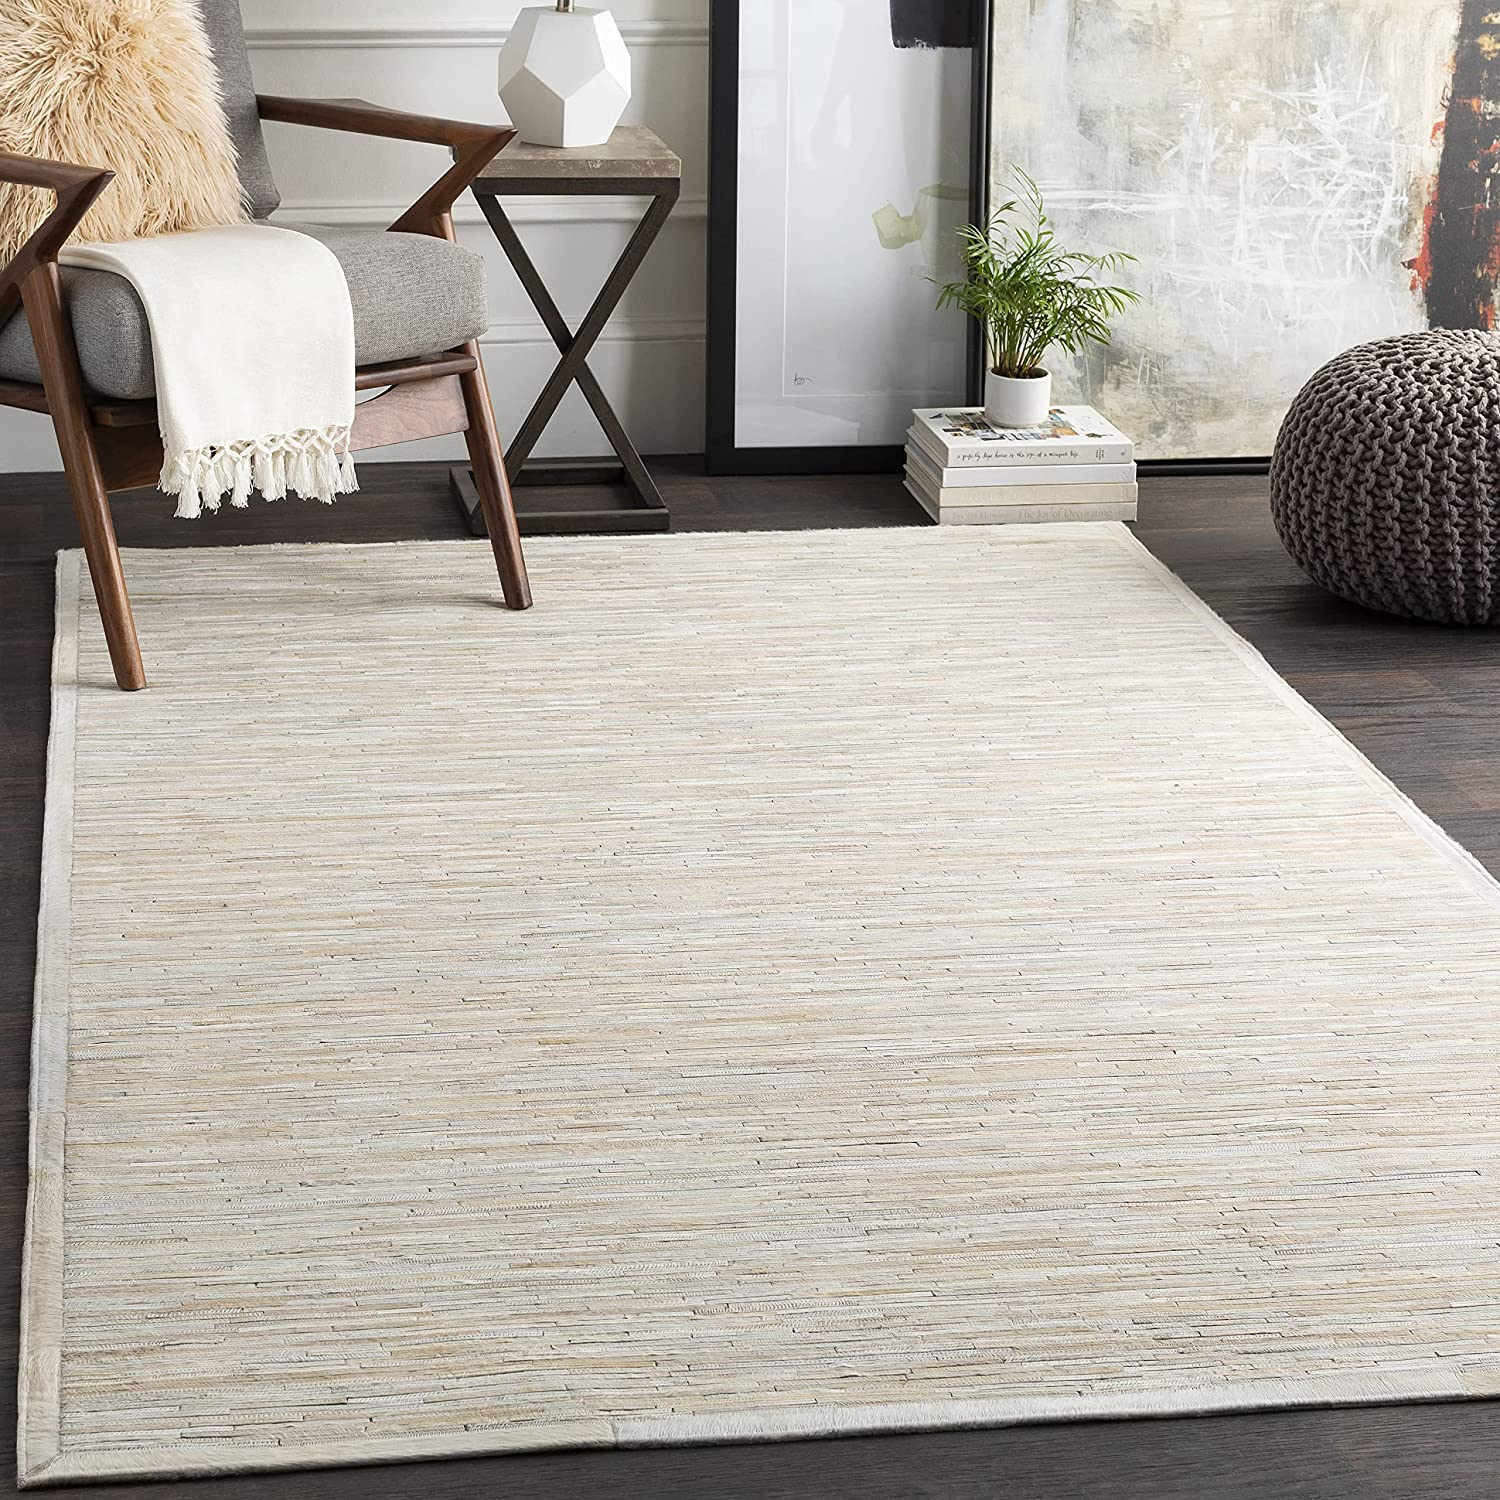 Singar Carpet Hand Woven Natural Cowhide Hair Max 73% OFF Outlet sale feature Leat on Work Patch